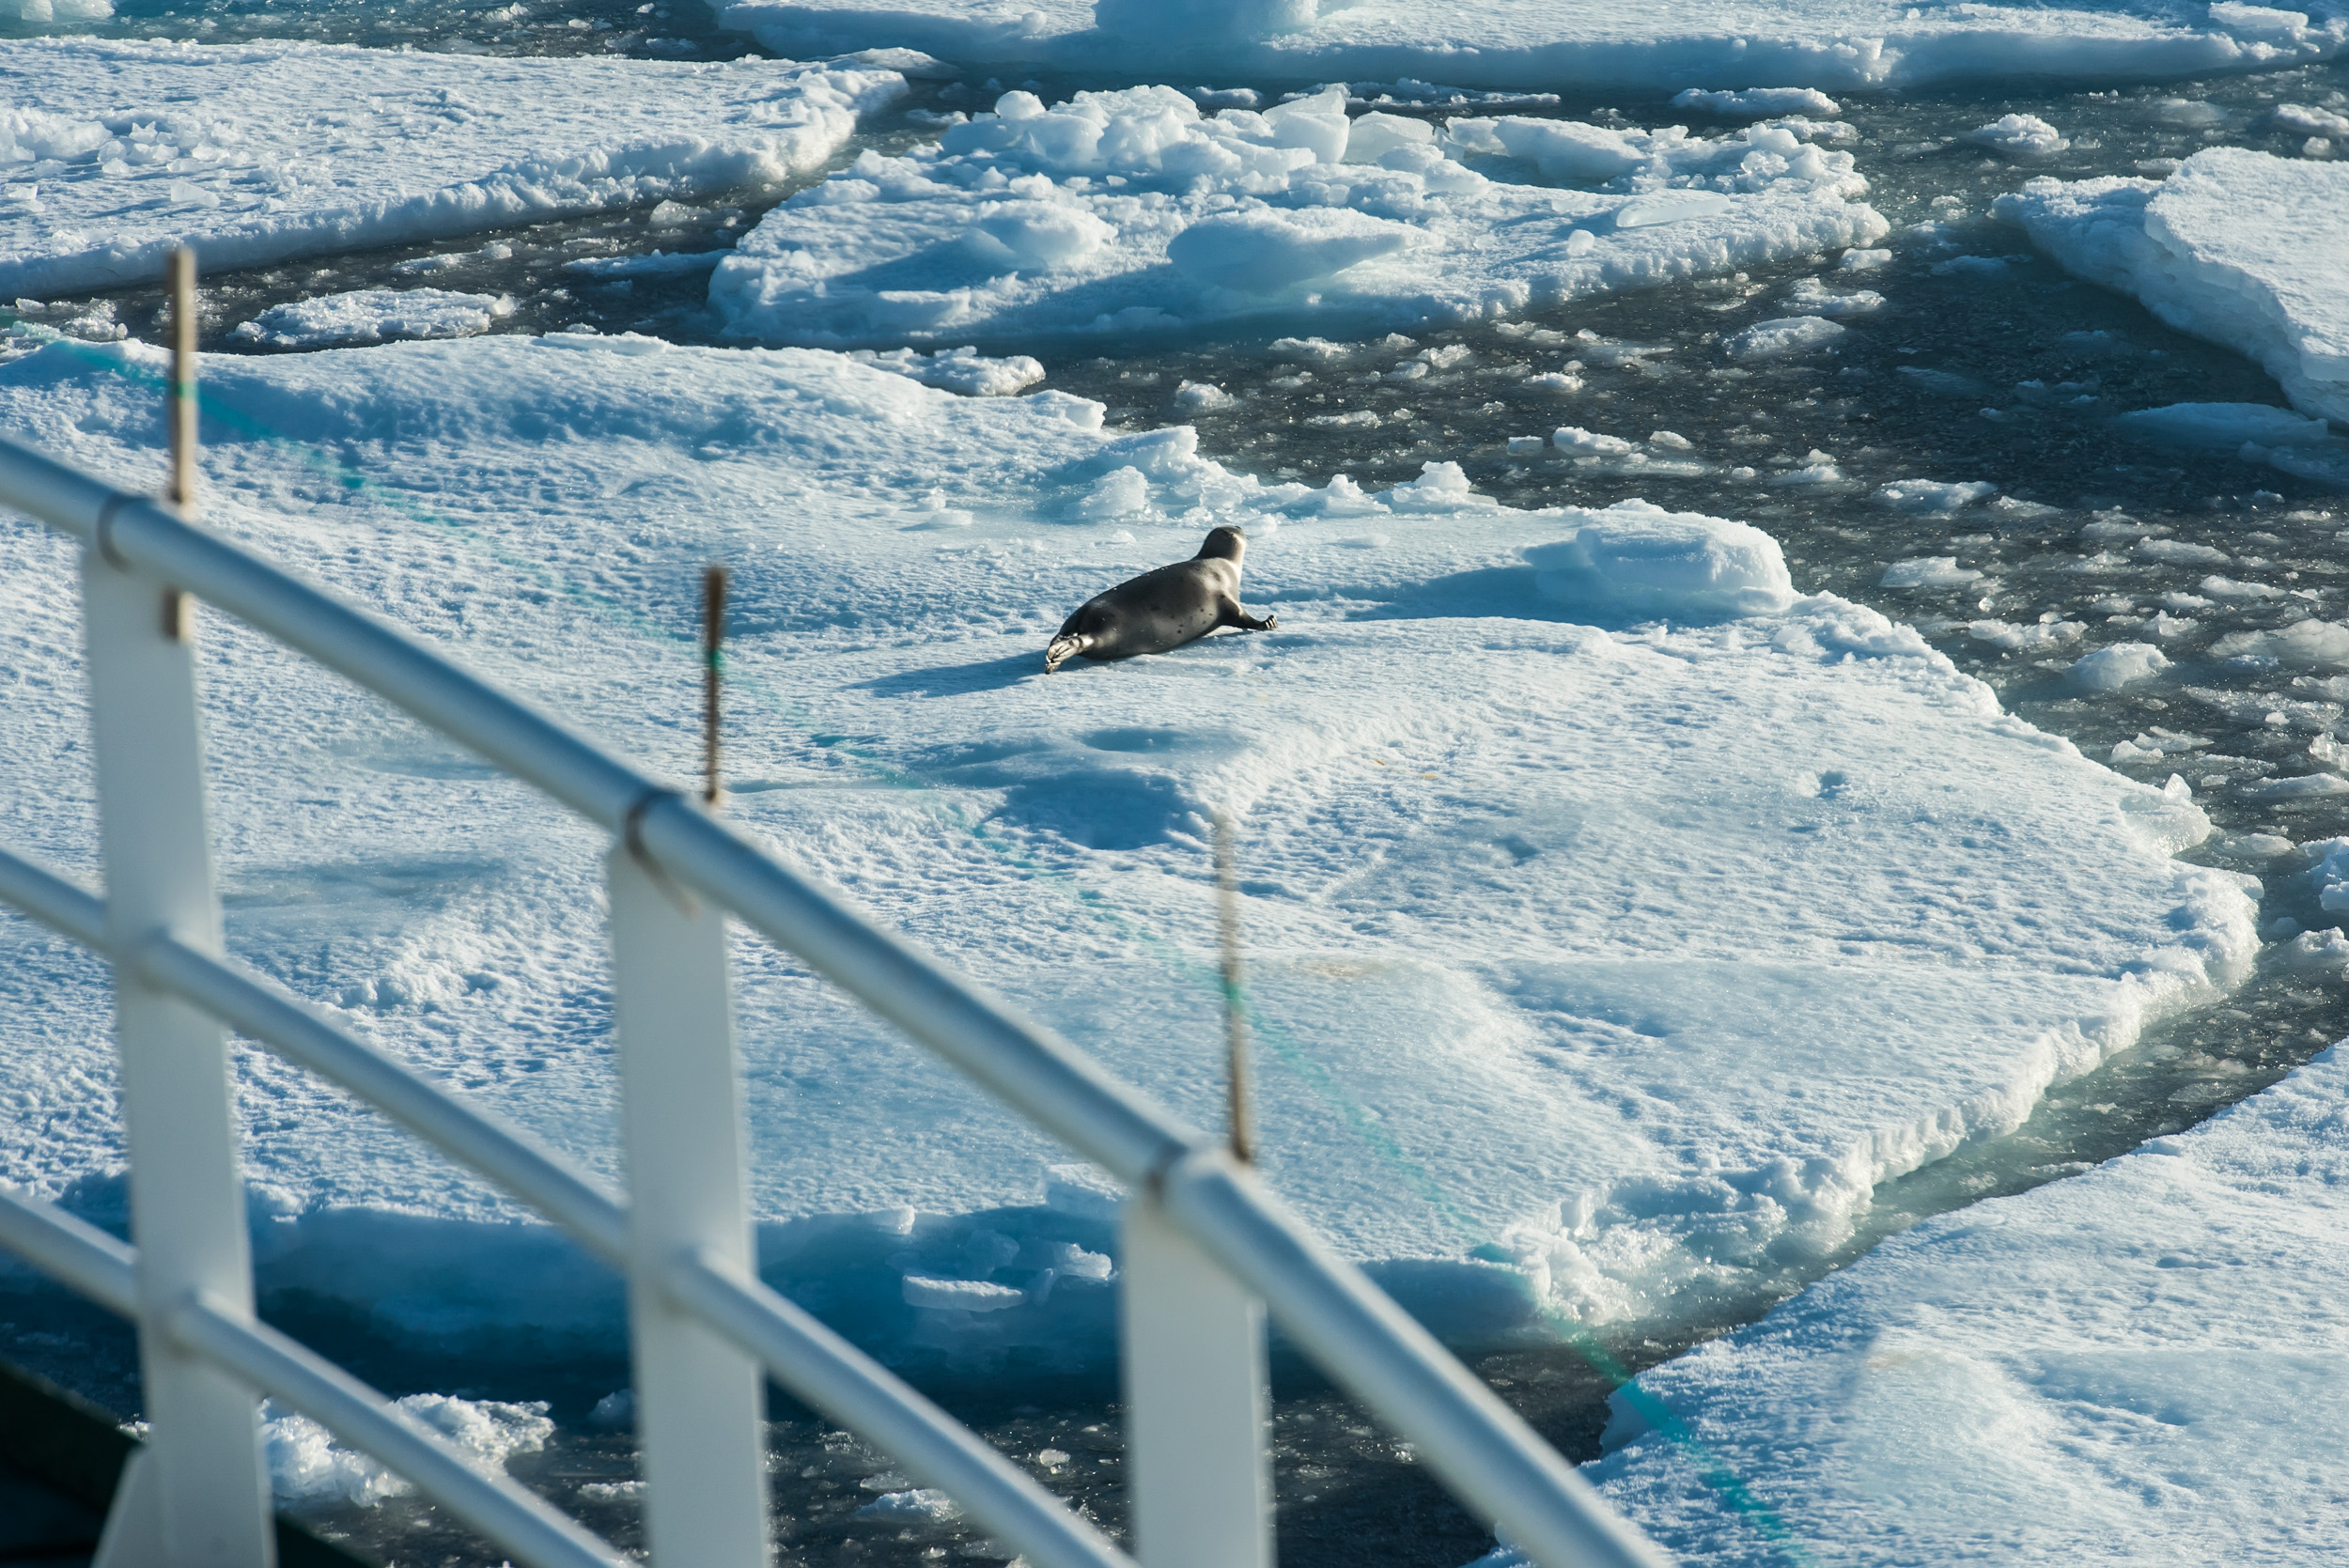 Climate change leads to dramatic upheavals in the Arctic Ocean. The physical environment is changing quickly with increased temperatures and reduced ice cover. This can have serious consequences for arctic species such as seals and other marine mammals. JONAA©Elvar H. Hallfredsson, Marine Research Institute